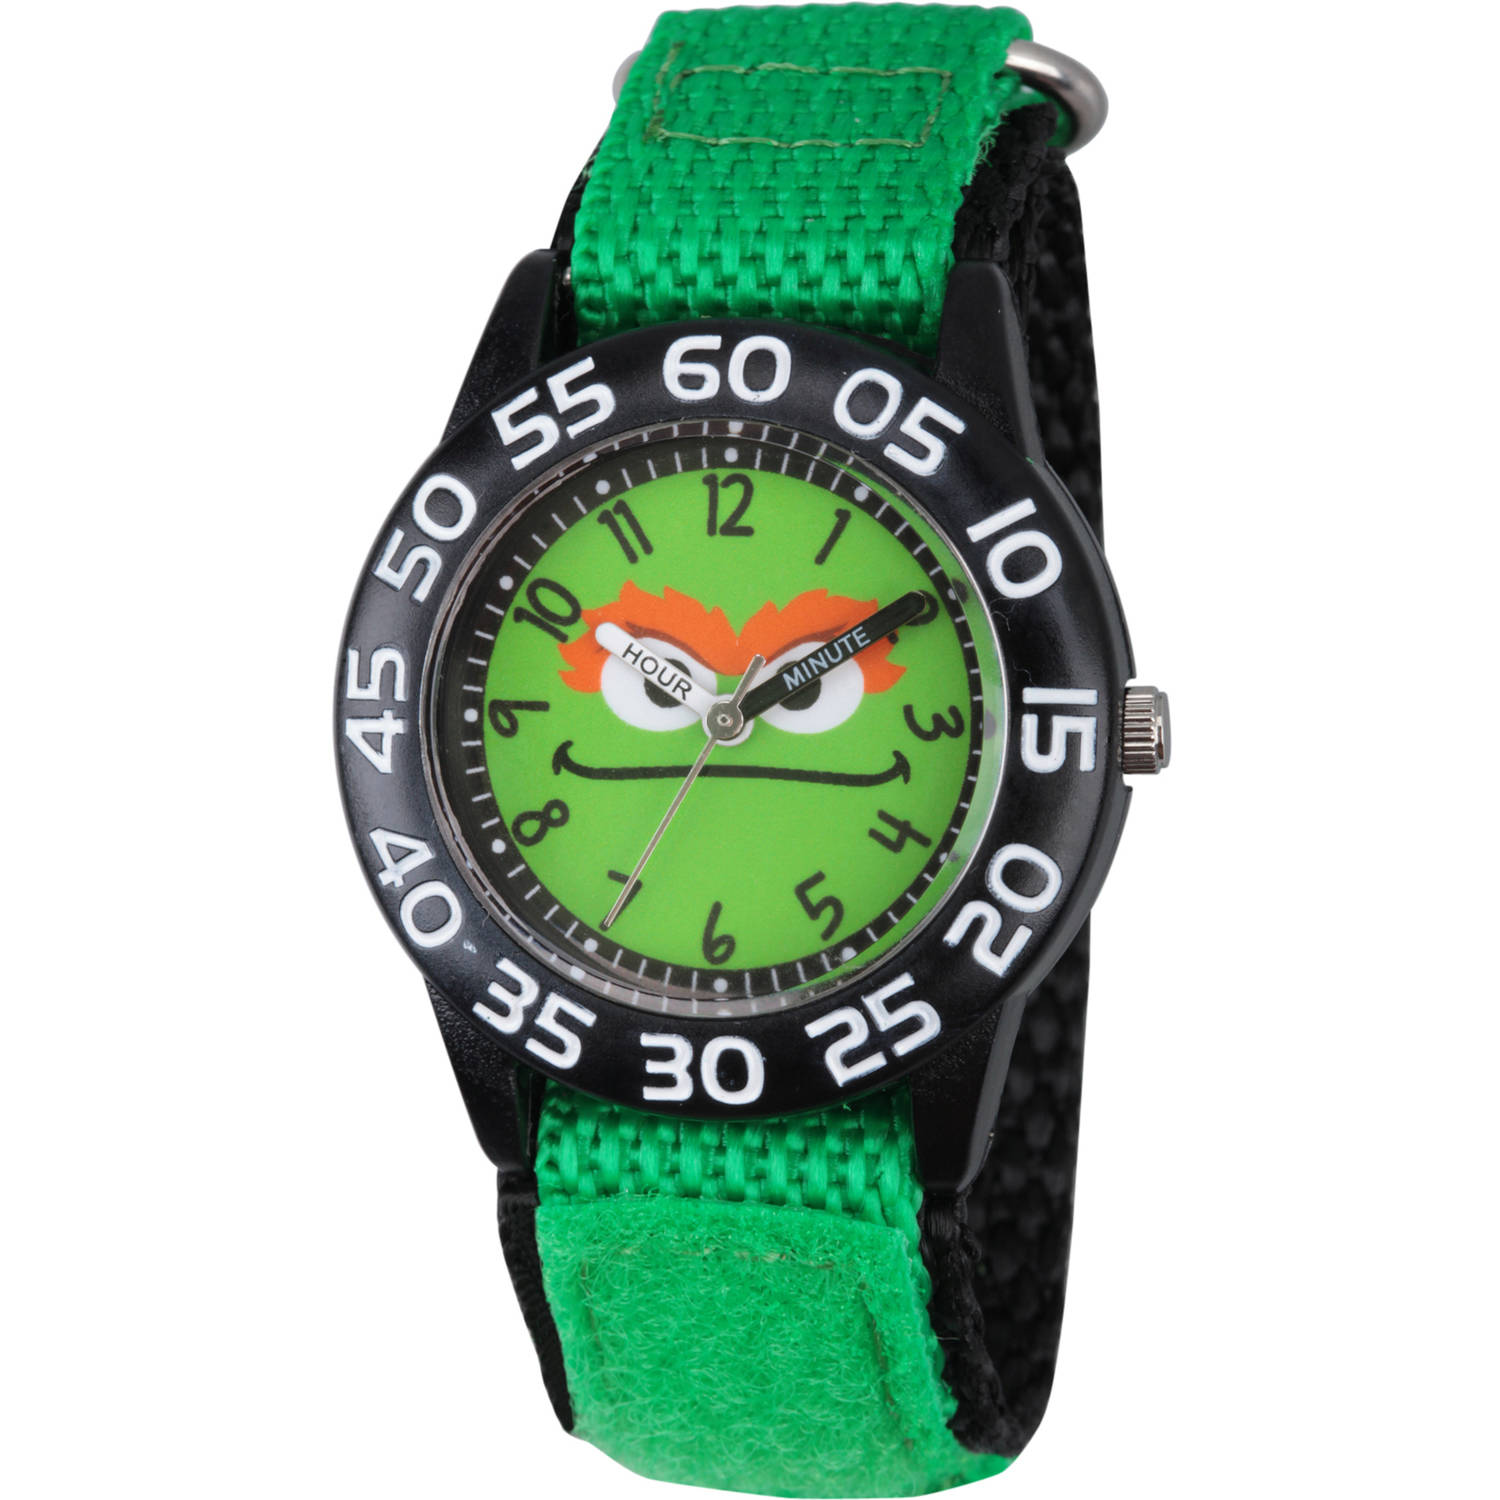 Sesame Street Boys' Black Plastic Time Teacher Watch, Green Hook and Loop Nylon Strap with Black Backing